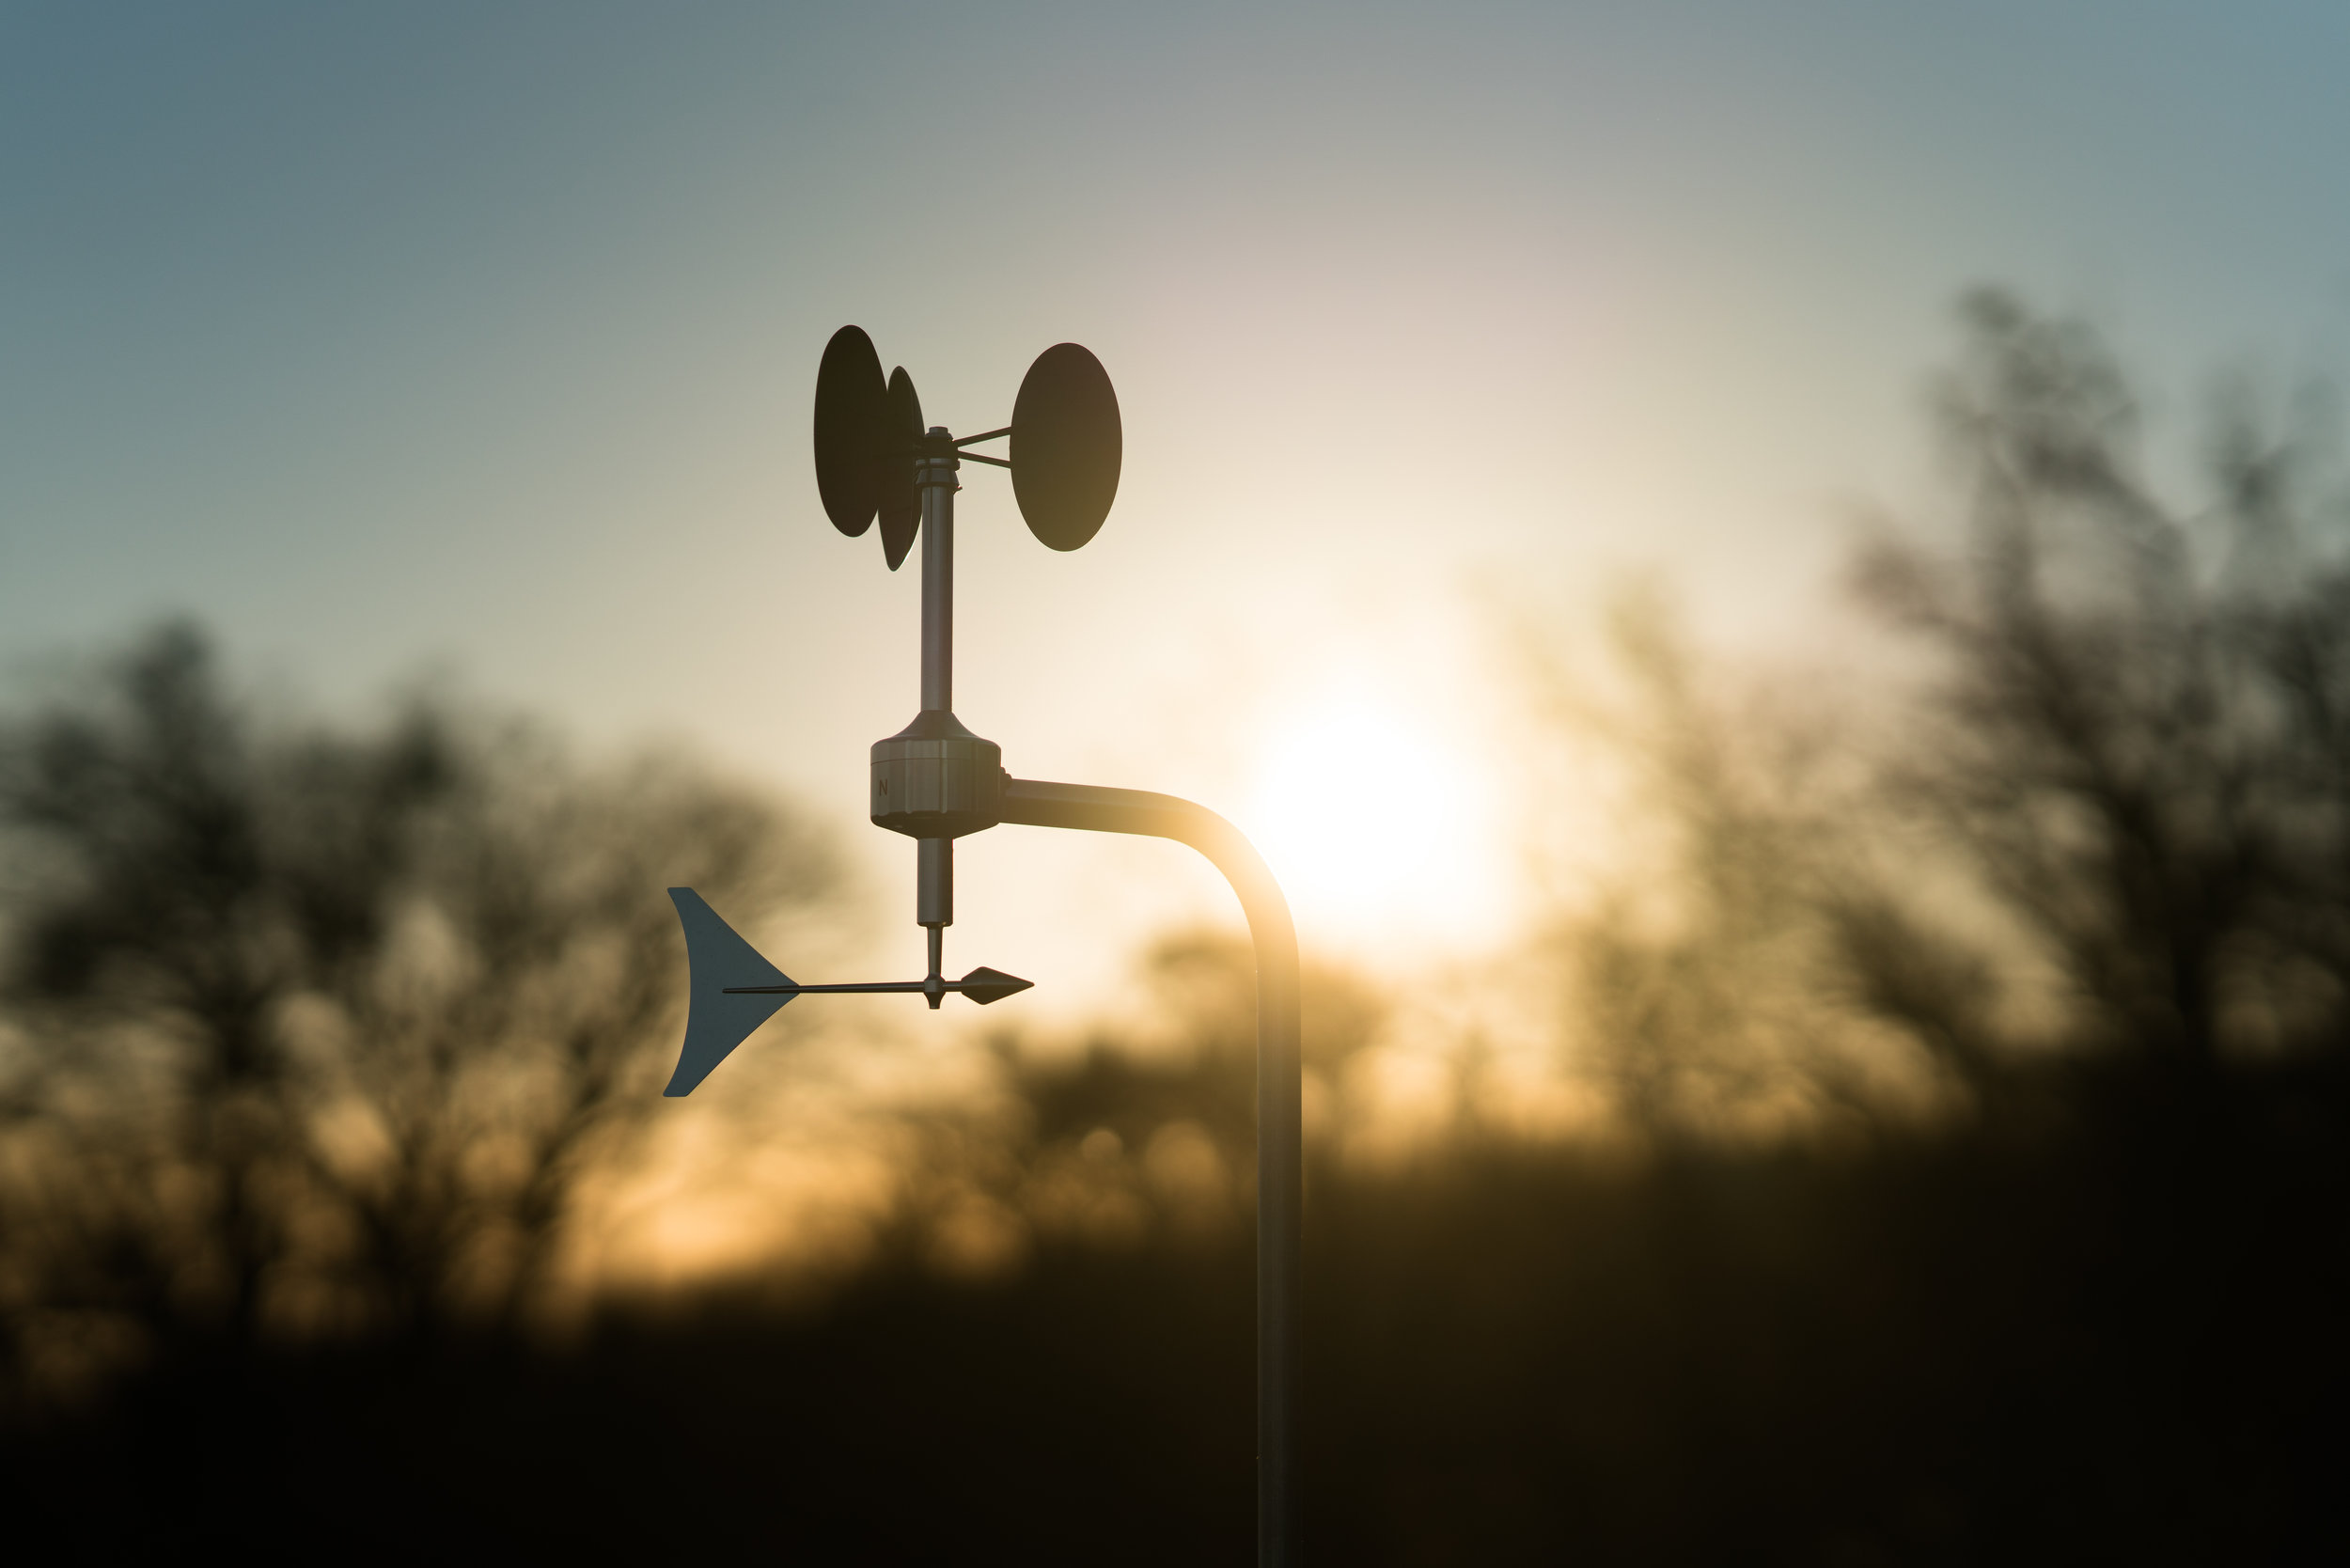 MeteoWind 2 anemometer - the Thies CLIMA First Class competitor